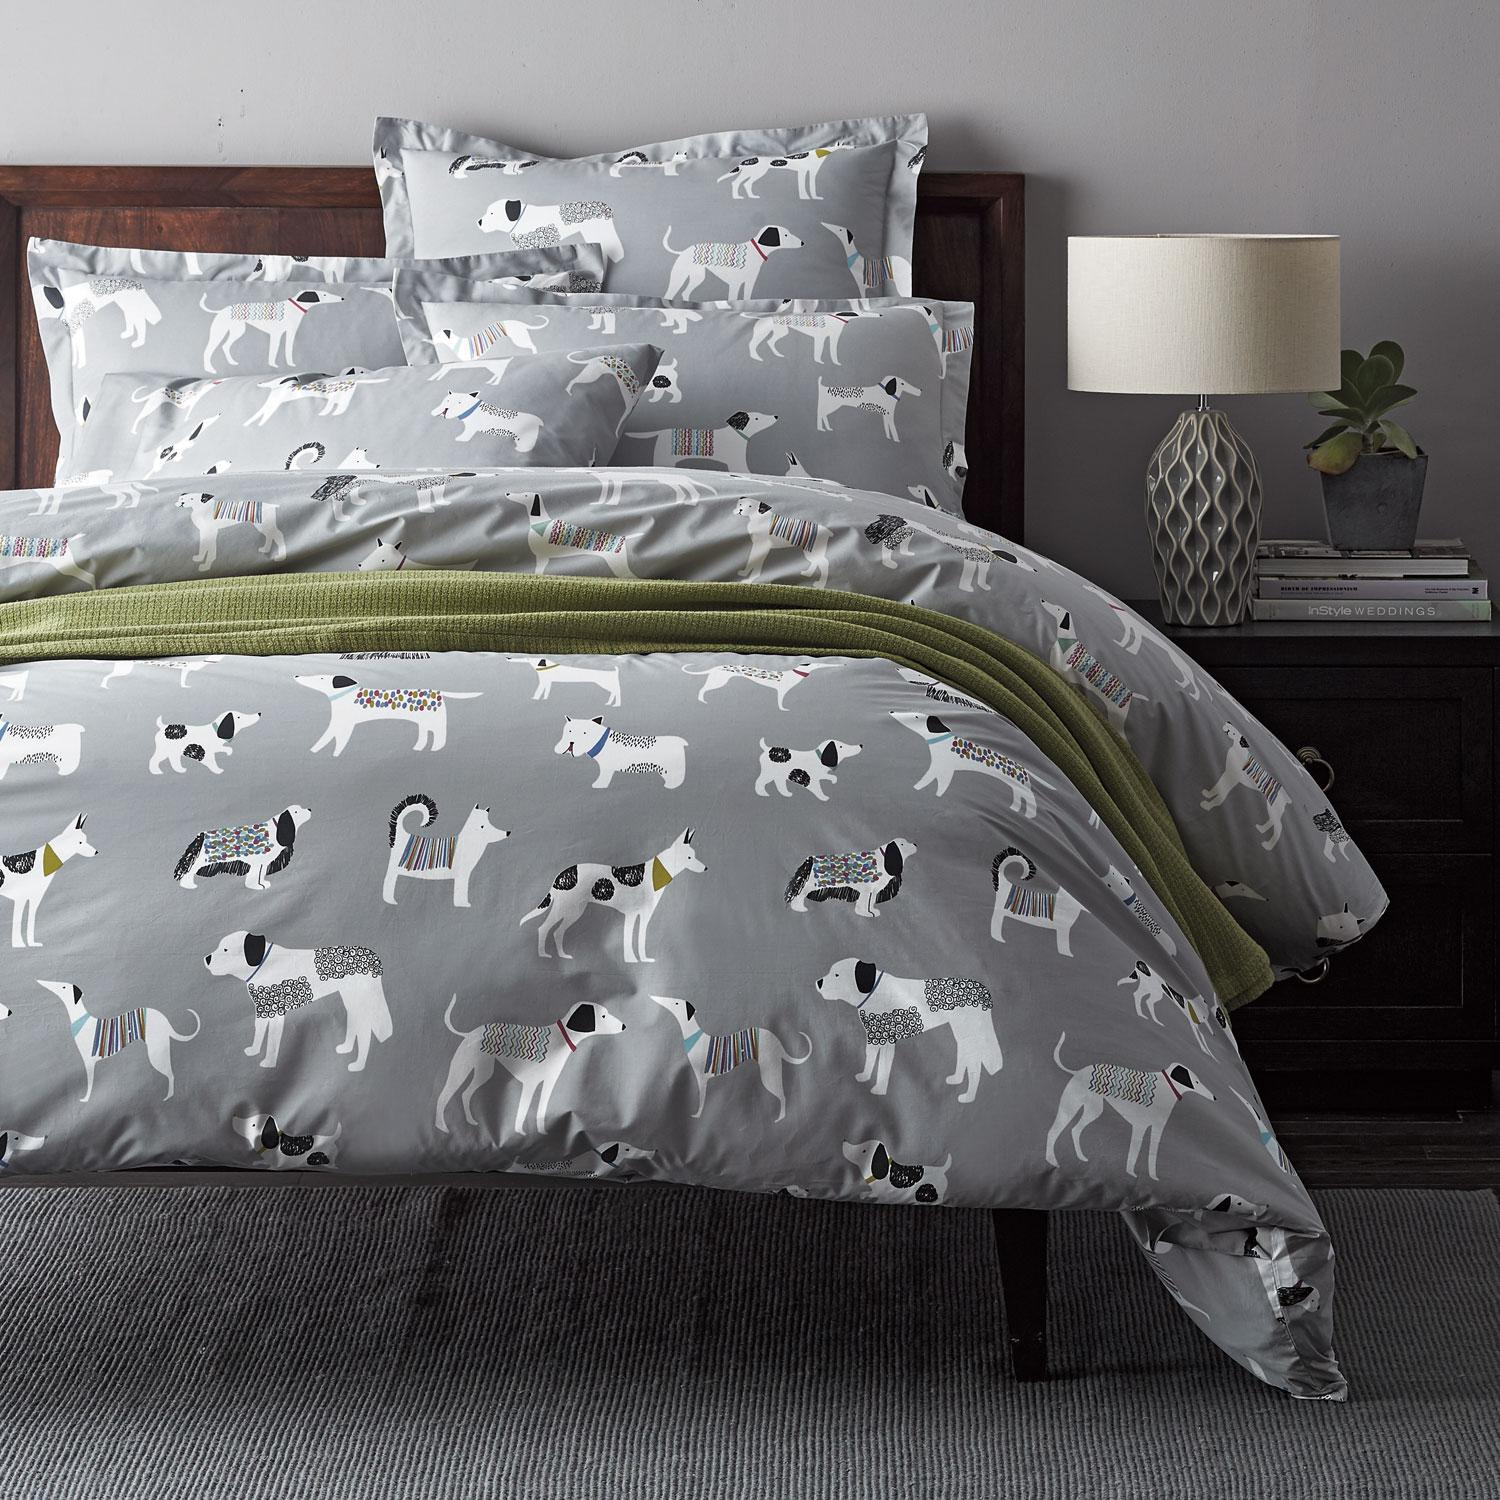 Dog Days Percale Duvet Cover The Company Store